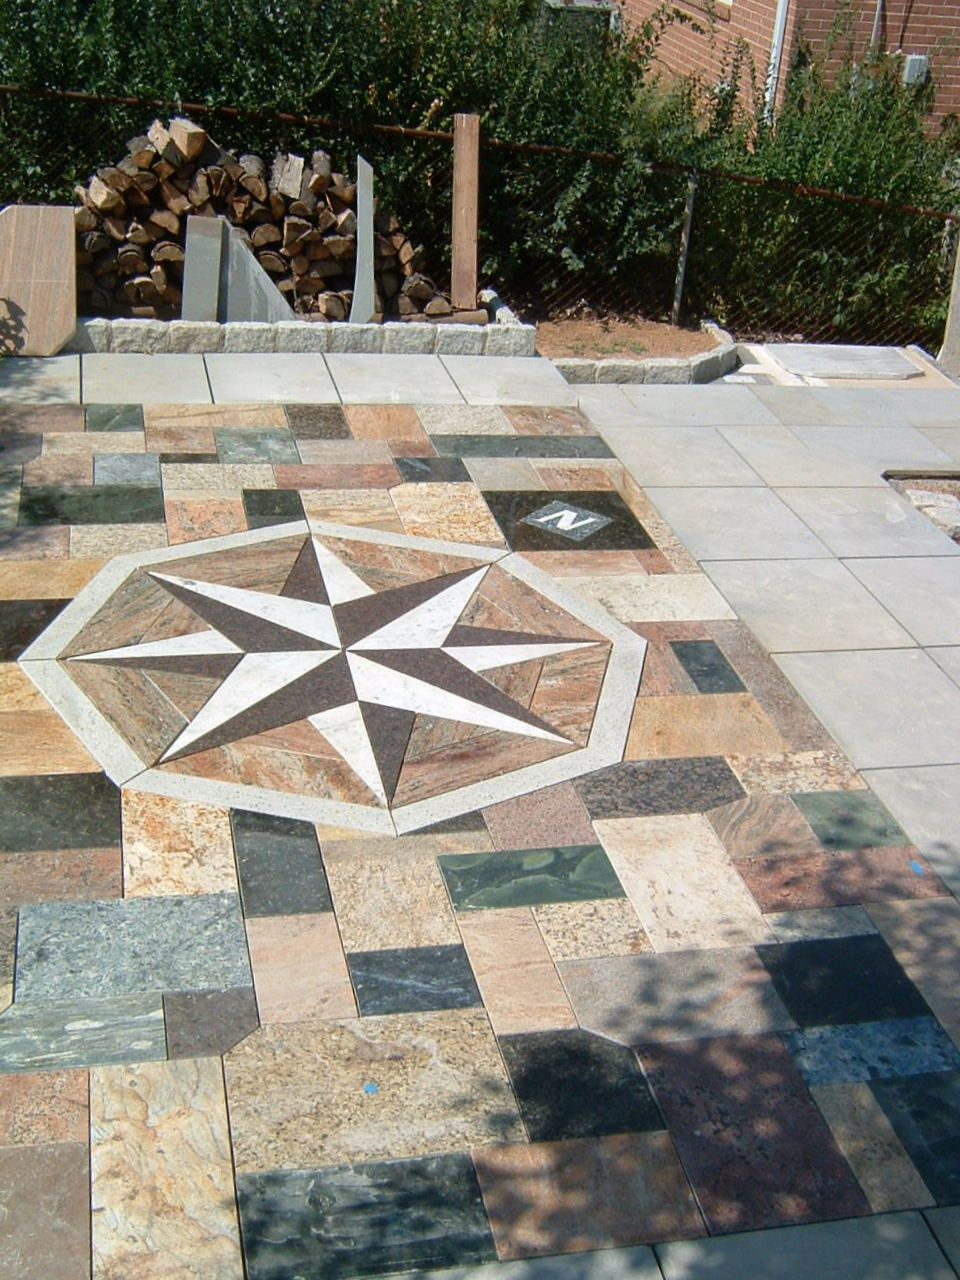 Lovely Recycled Granite Countertops And PA Flagstone With Granite Cobble Curb. A  DIY Project!